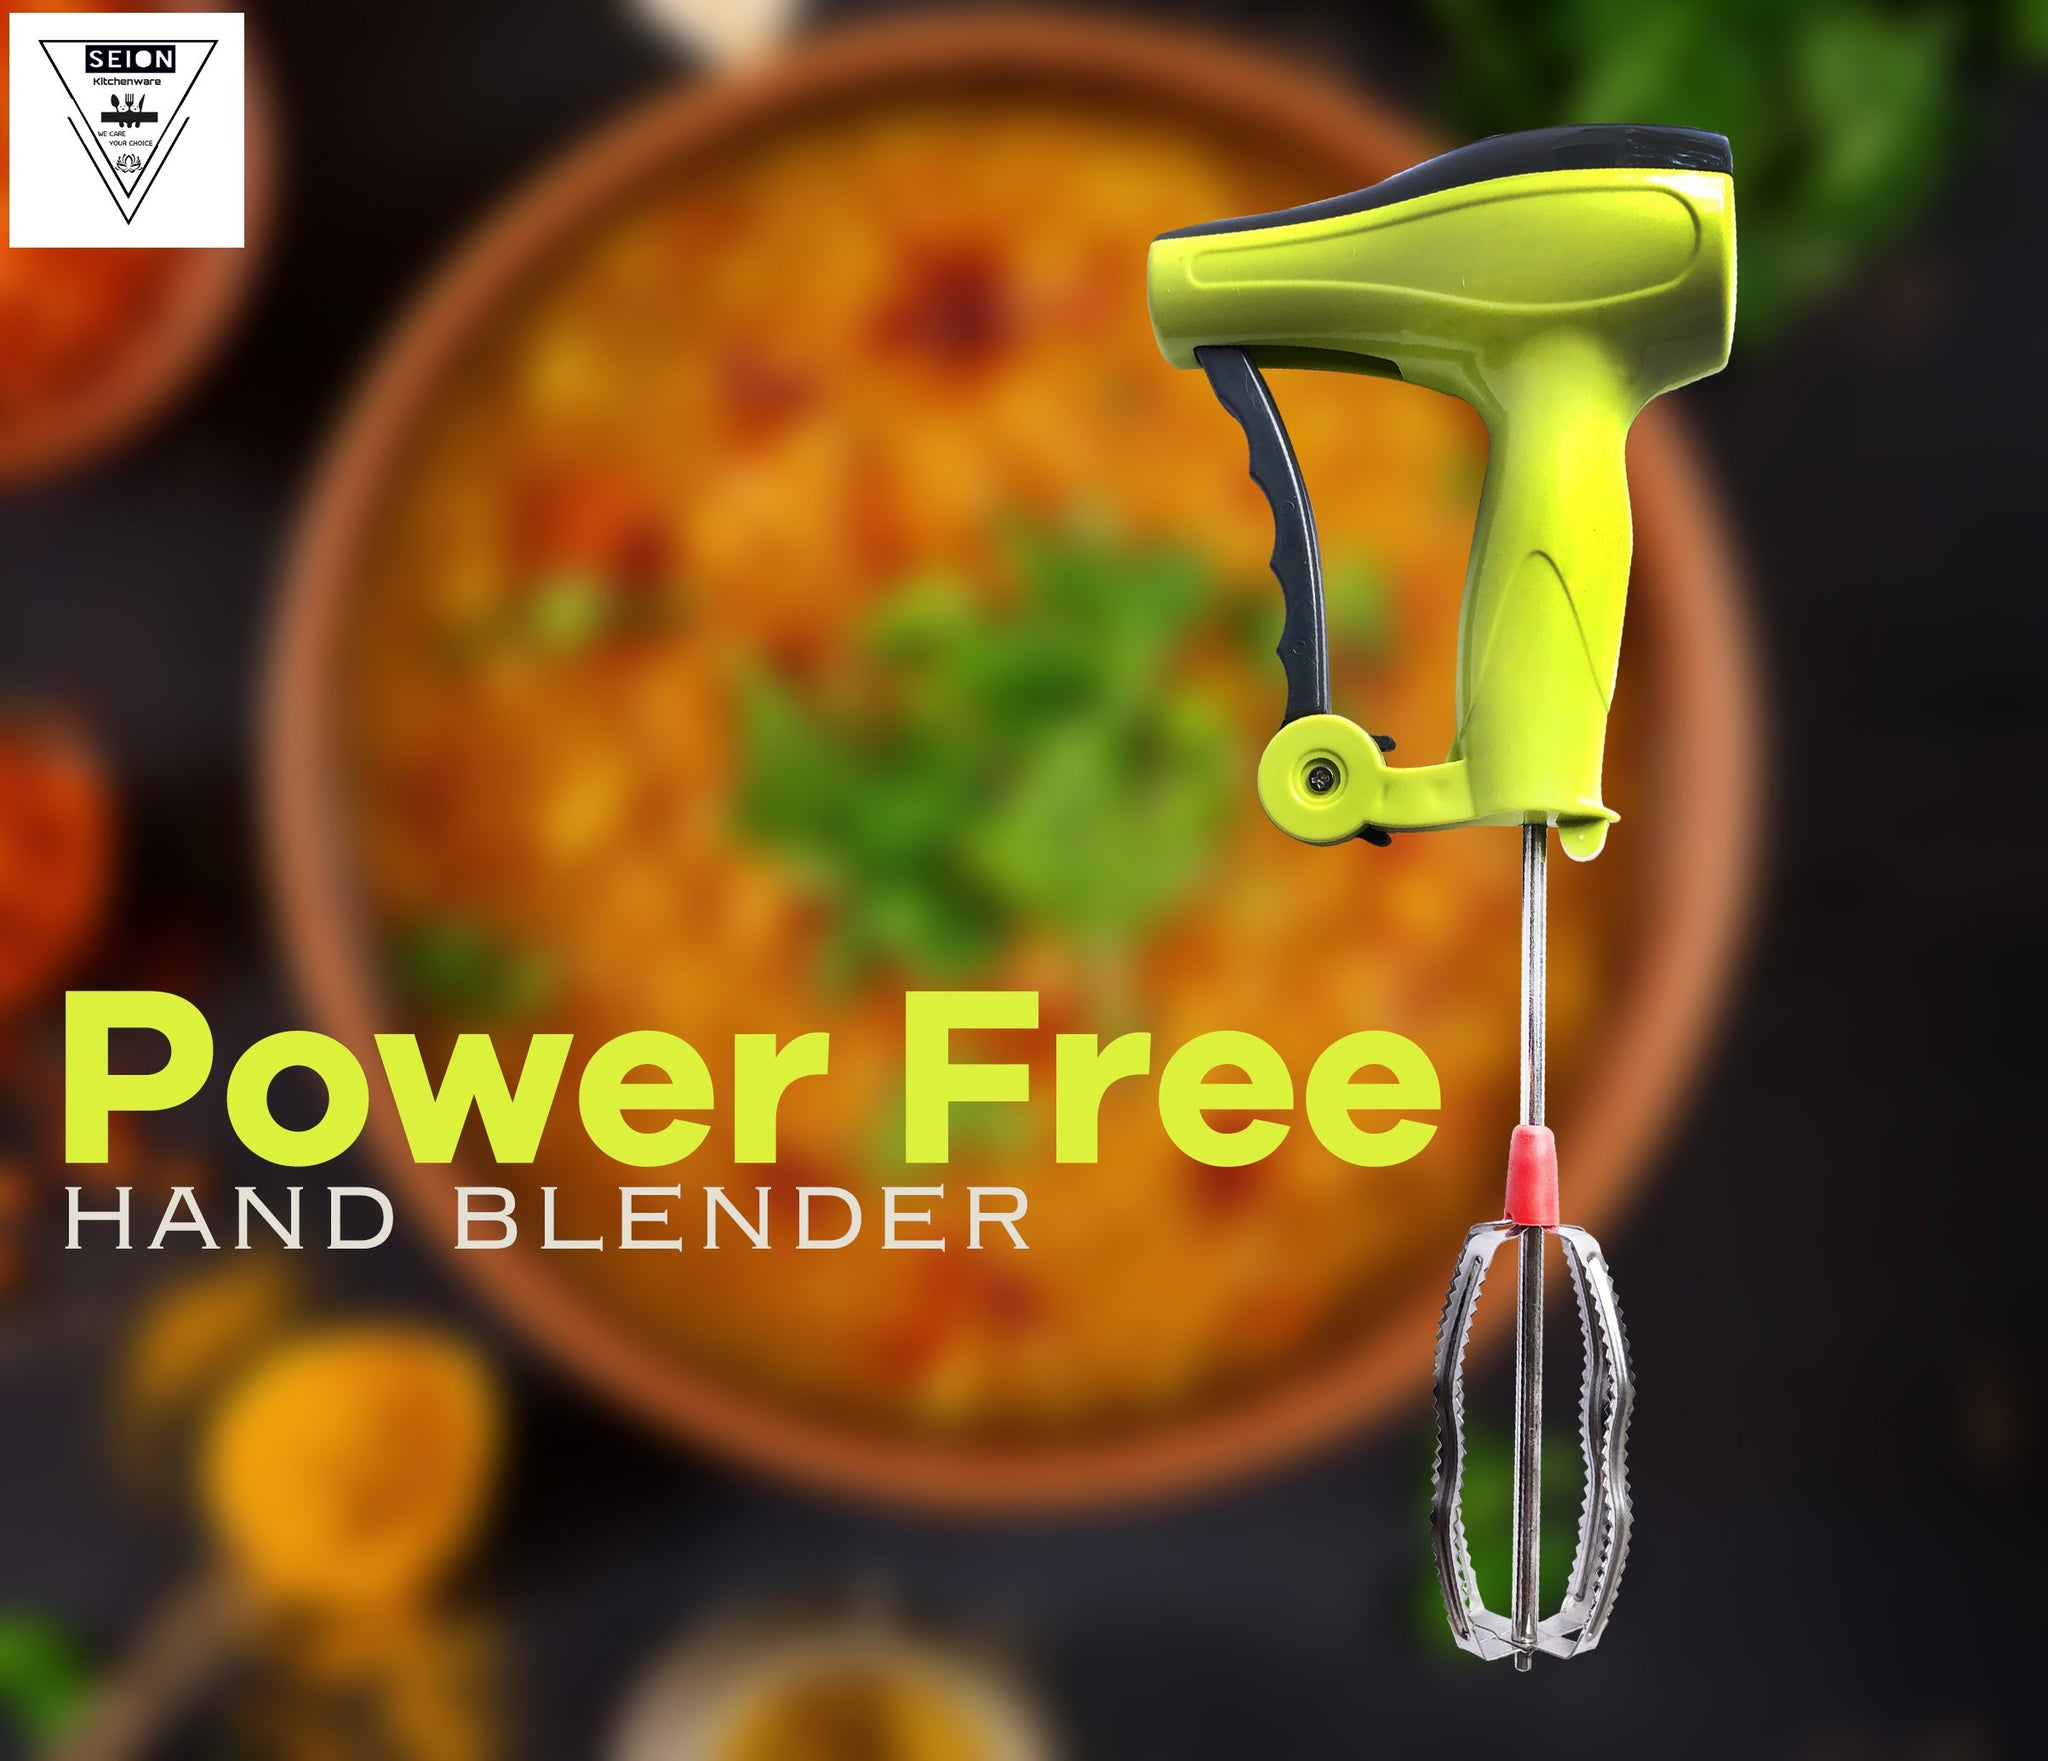 Power-Free Manual Hand Blender With Stainless Steel Blades